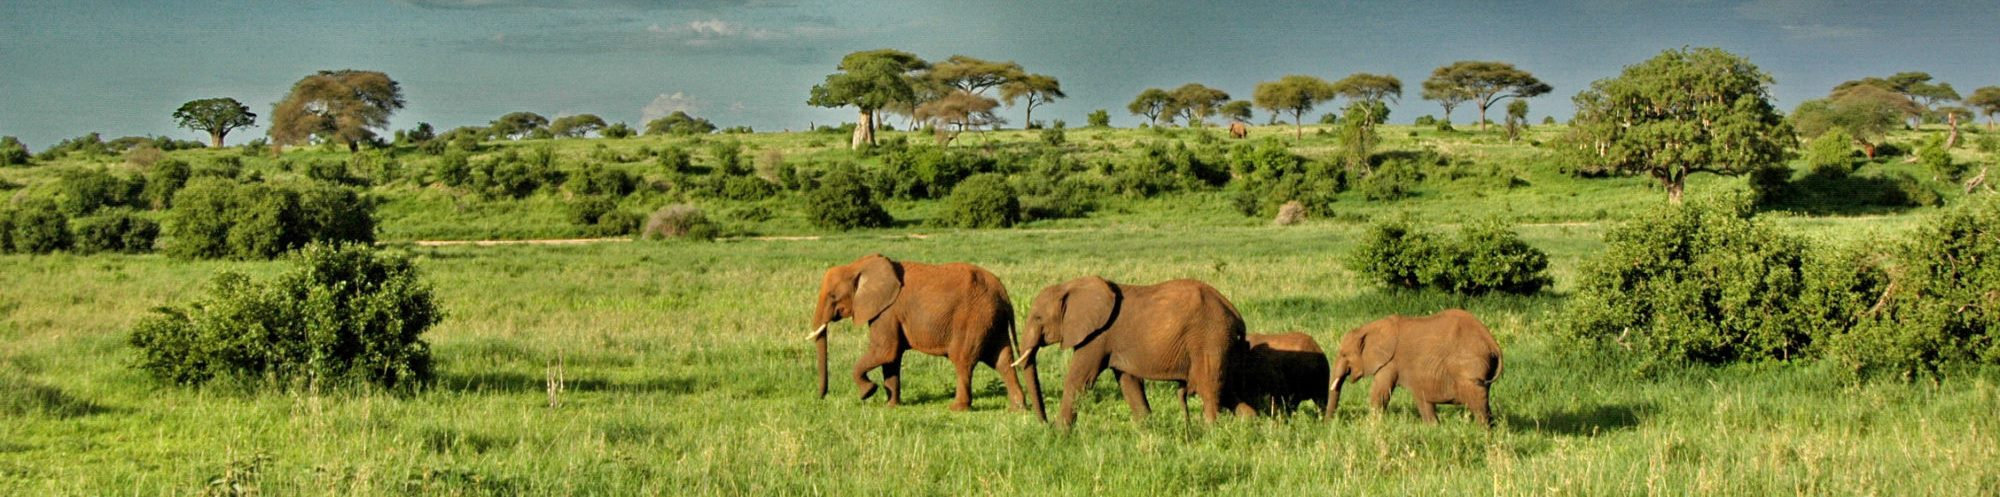 Tarangire-National-Park-elephants-roaming